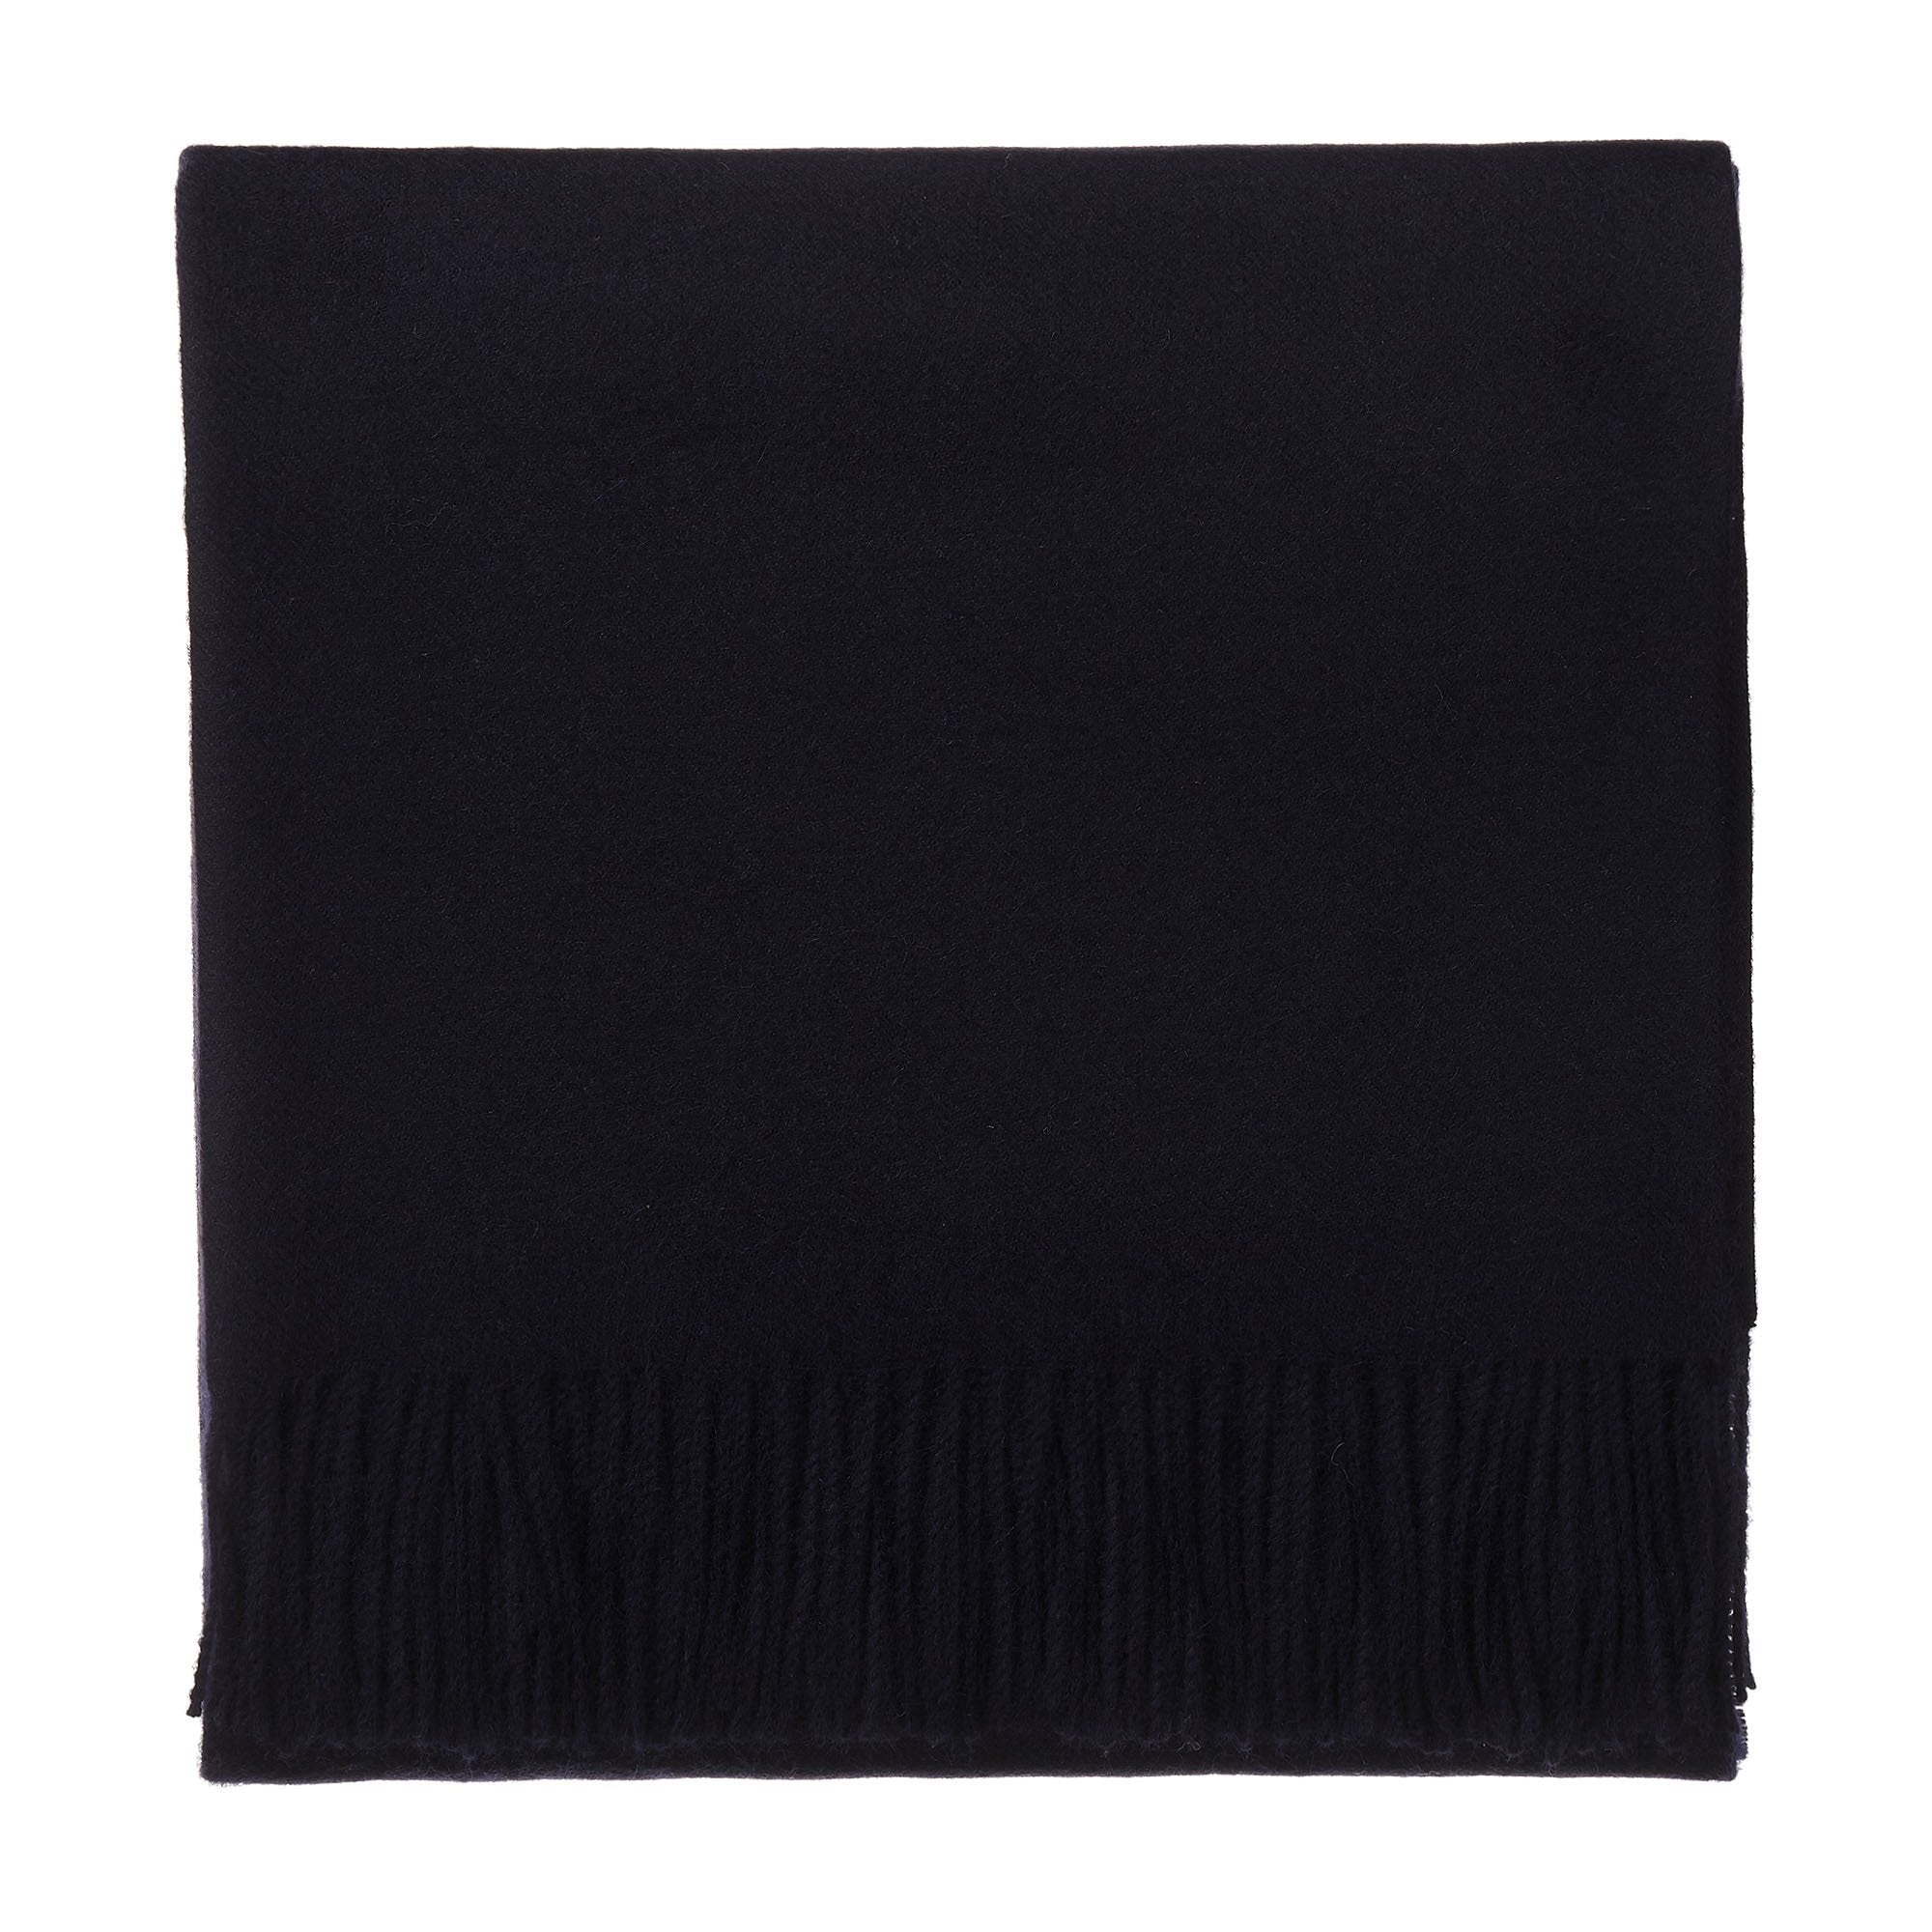 Arica Alpaca Blanket midnight blue, 100% baby alpaca wool